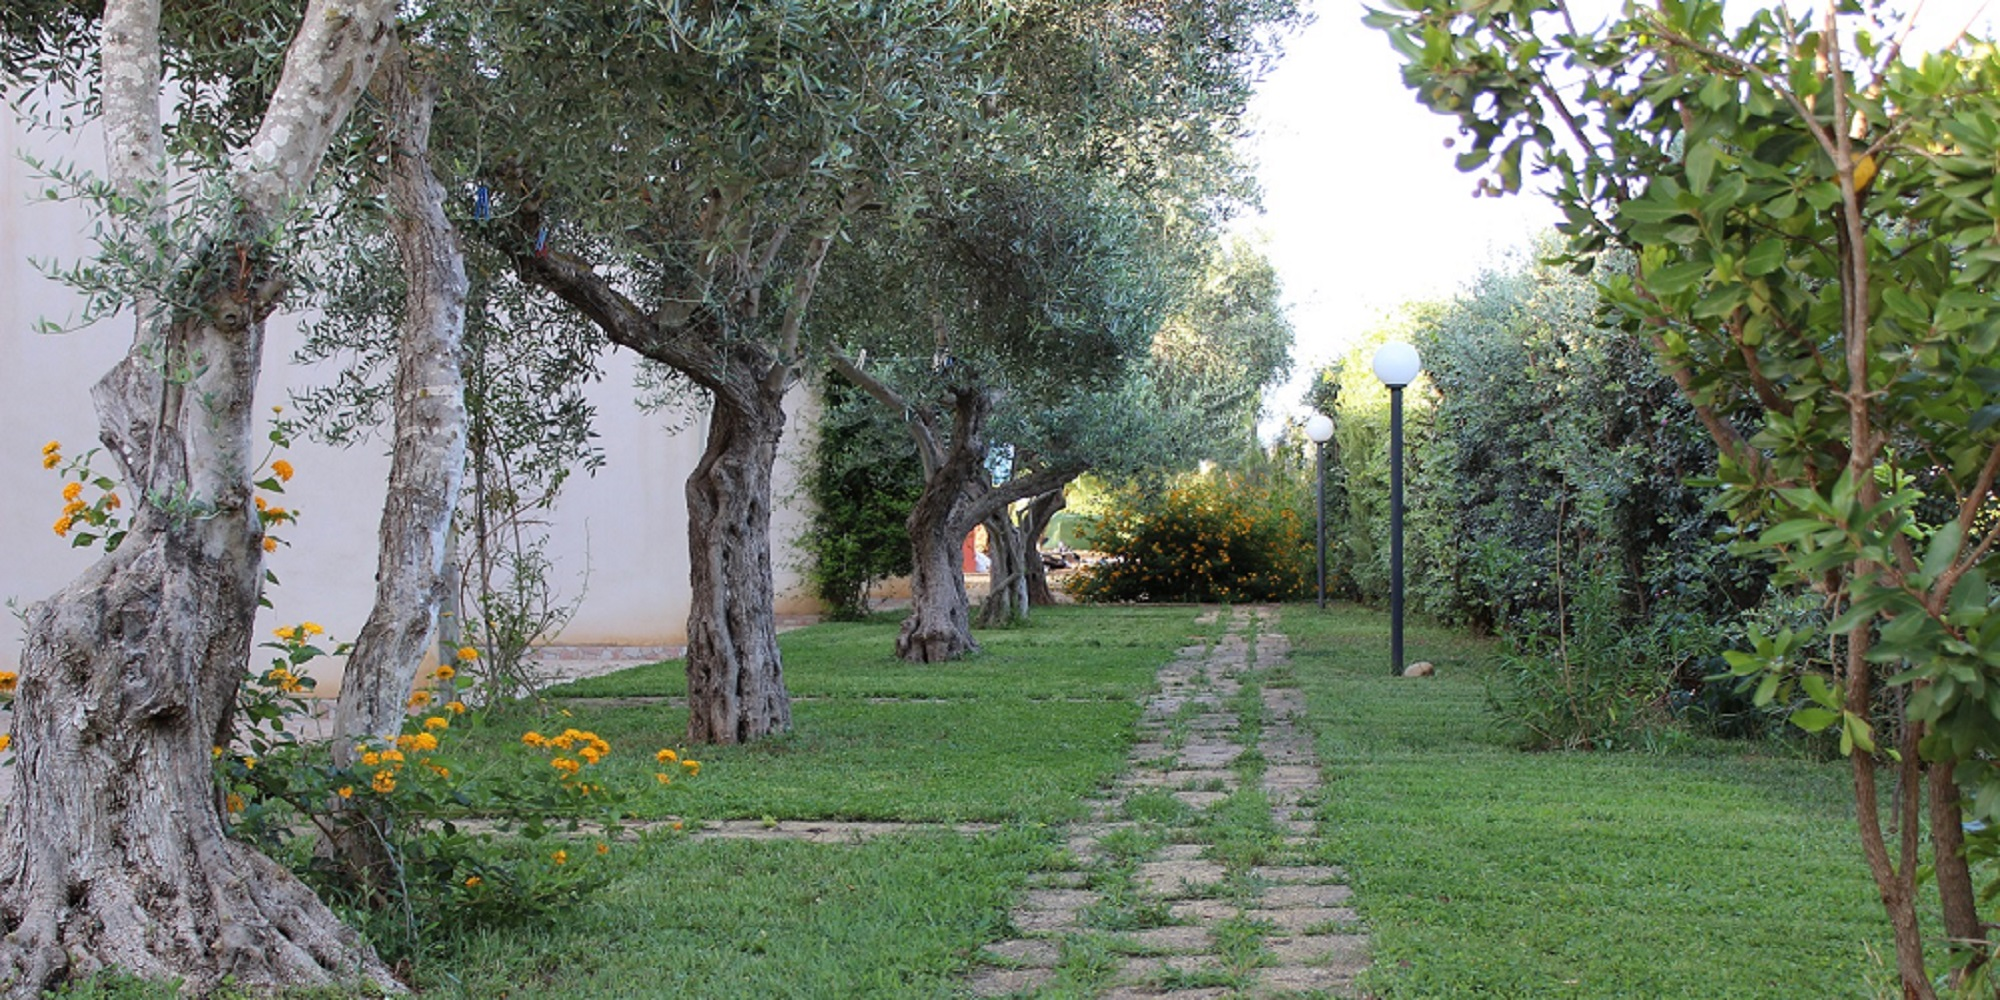 Lilybeo Village is The Garden of Aromas